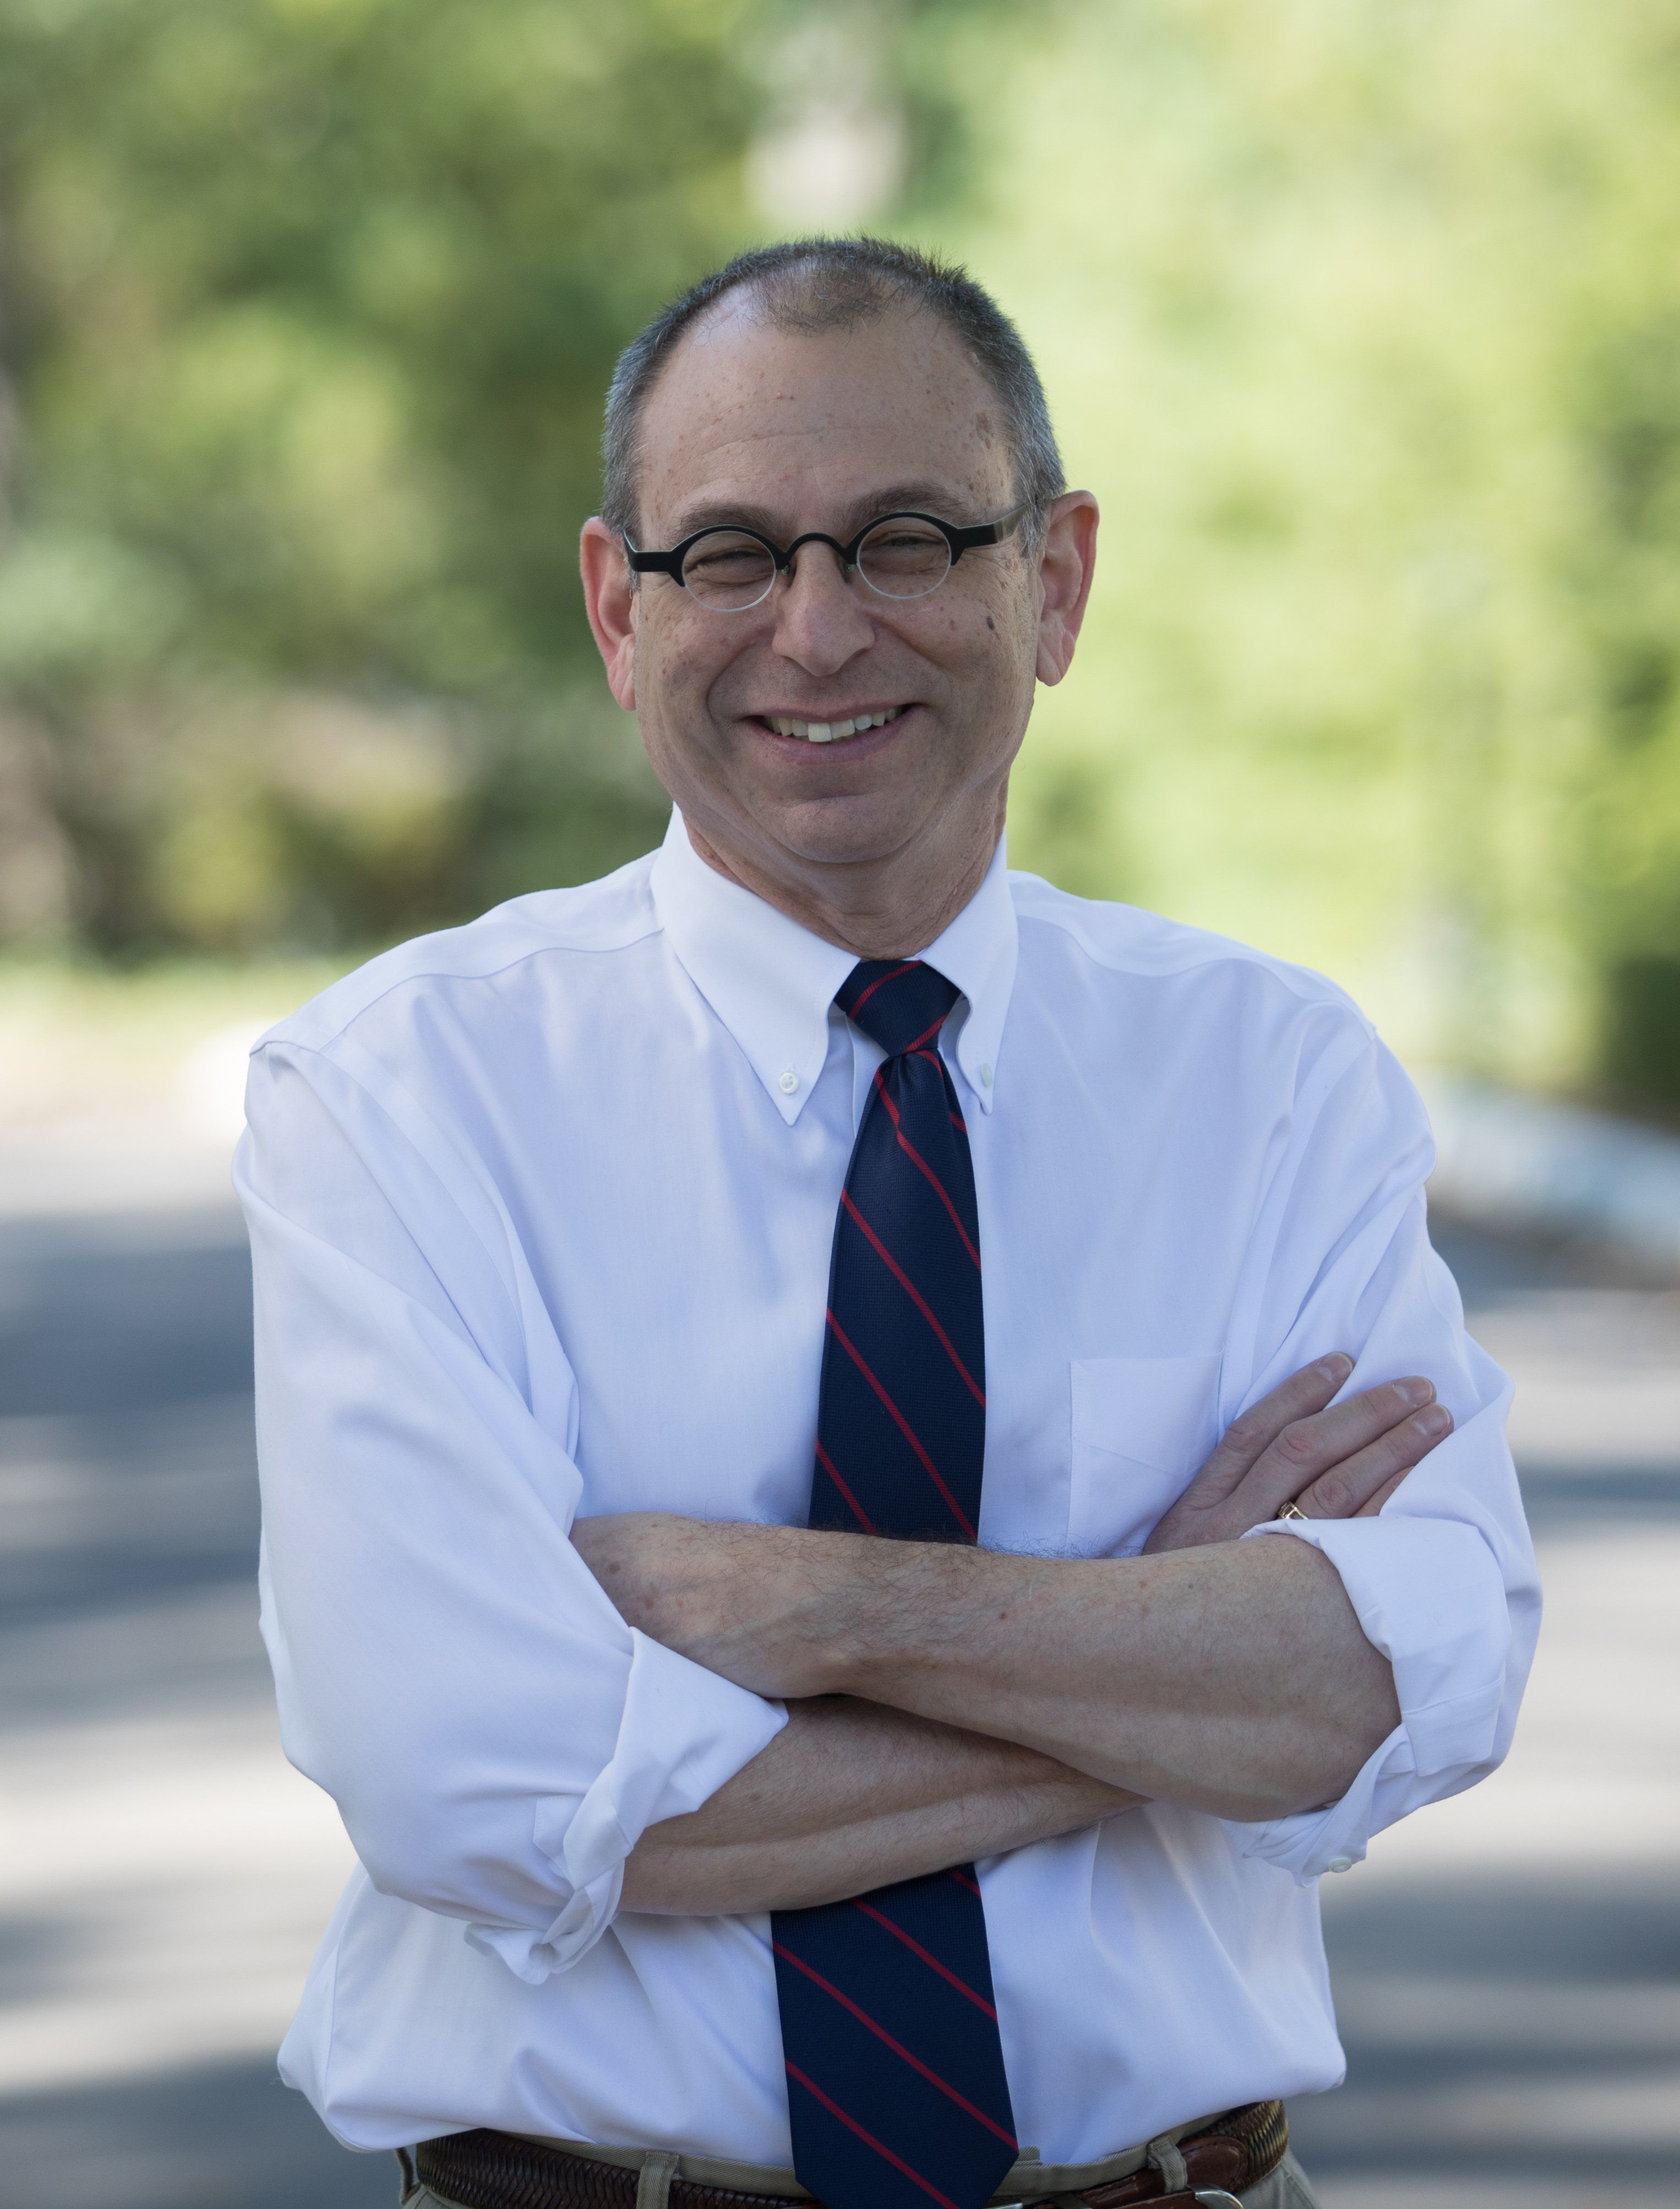 Rabbi Robert Barr announced his campaign for Congress on Tuesday.